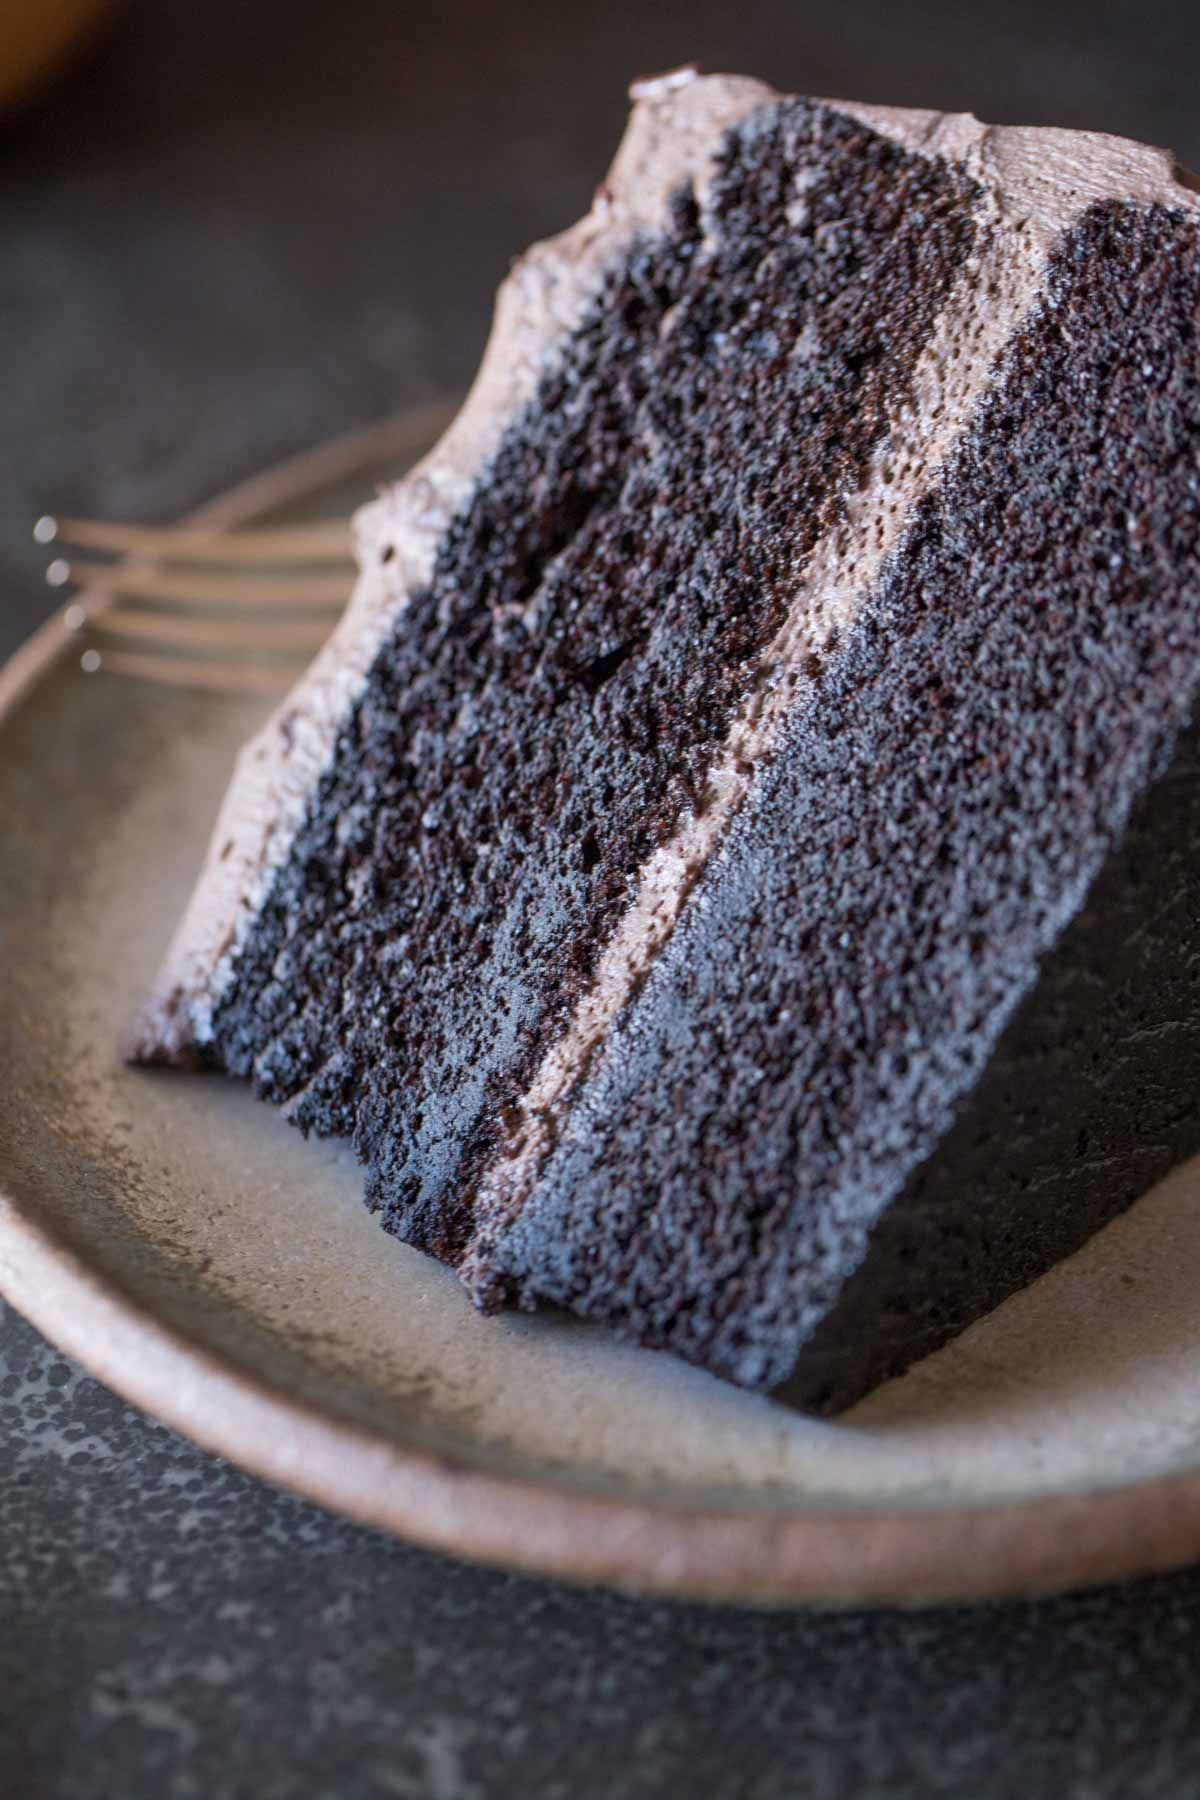 Dark Chocolate Cake With Whipped Cream Frosting Recipe In 2018